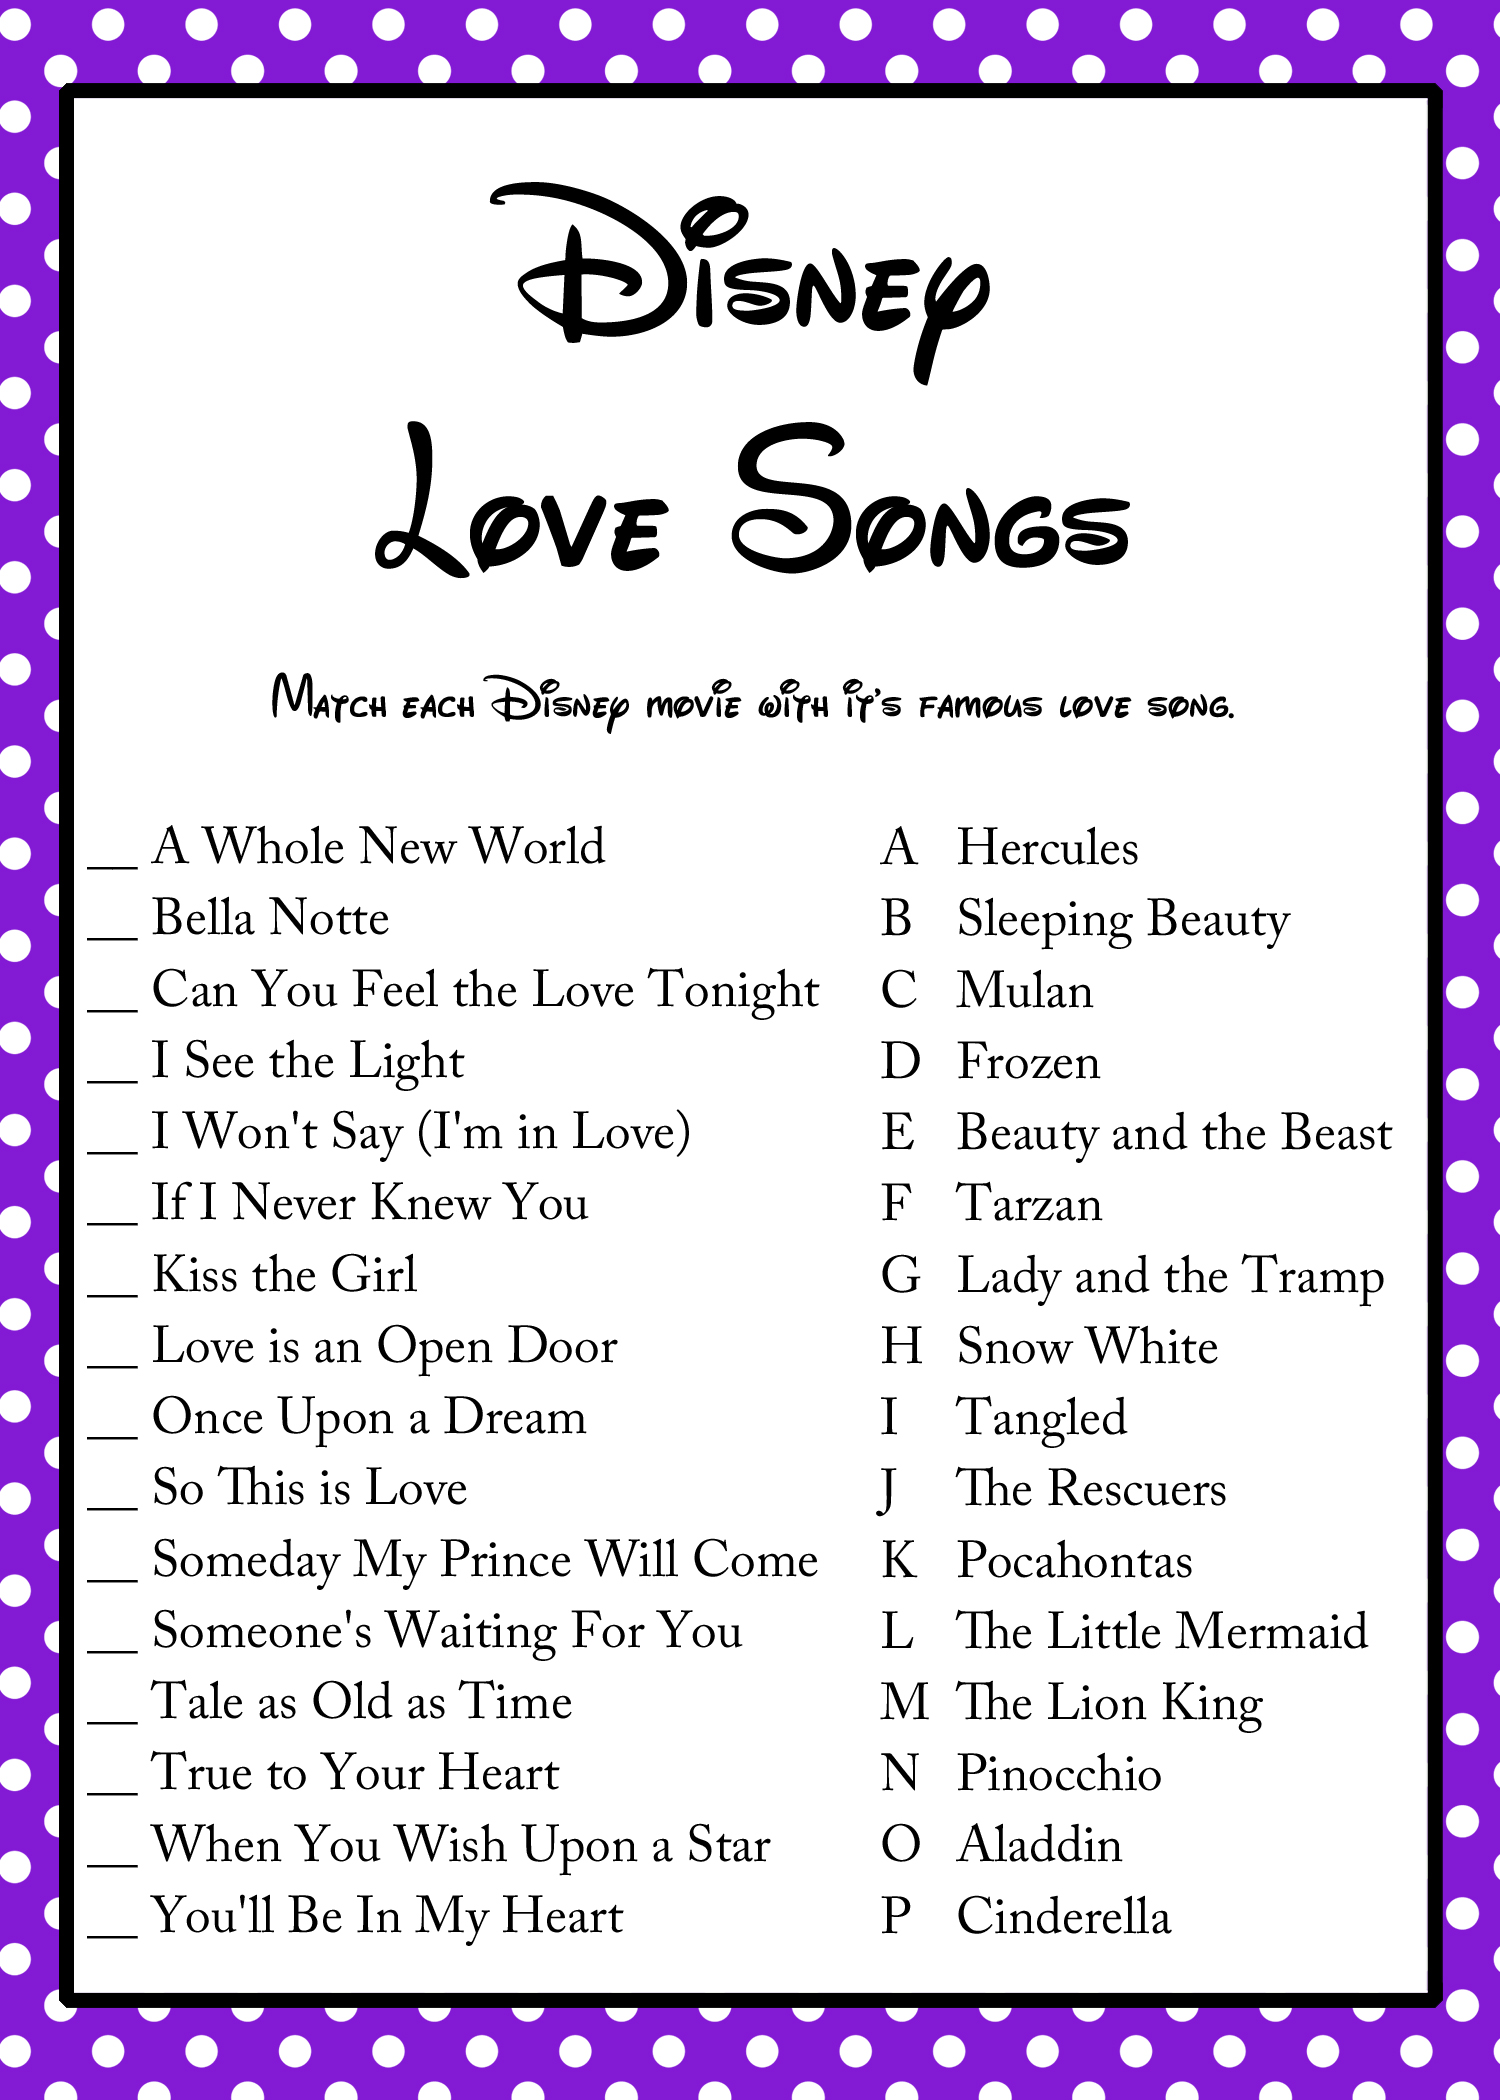 FREE Disney Love Song Bridal Shower Game Bridal Shower Ideas